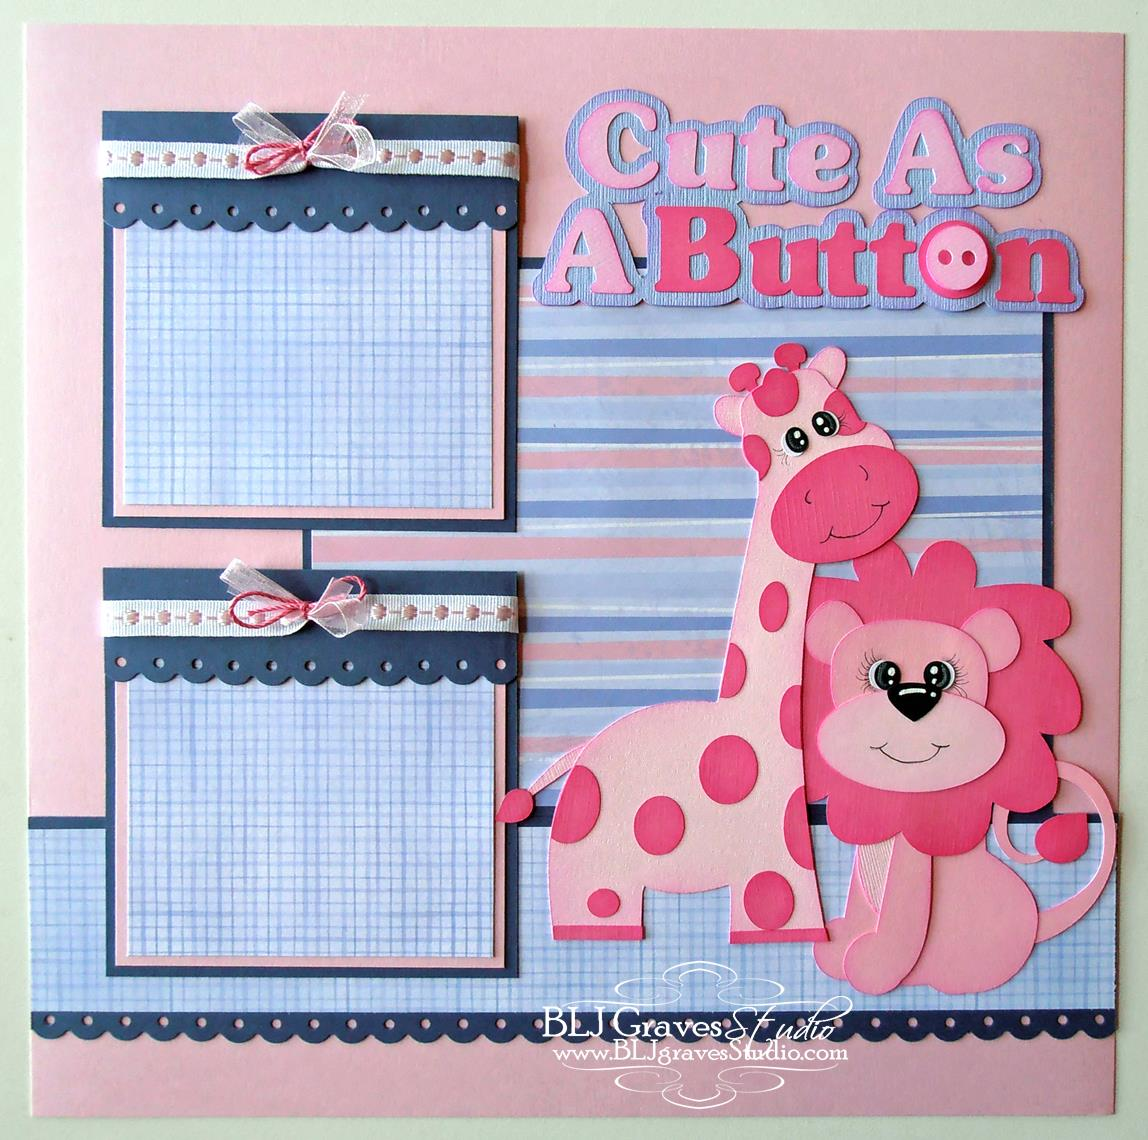 Blj Graves Studio Cute As A Button Baby Girl Scrapbook Page